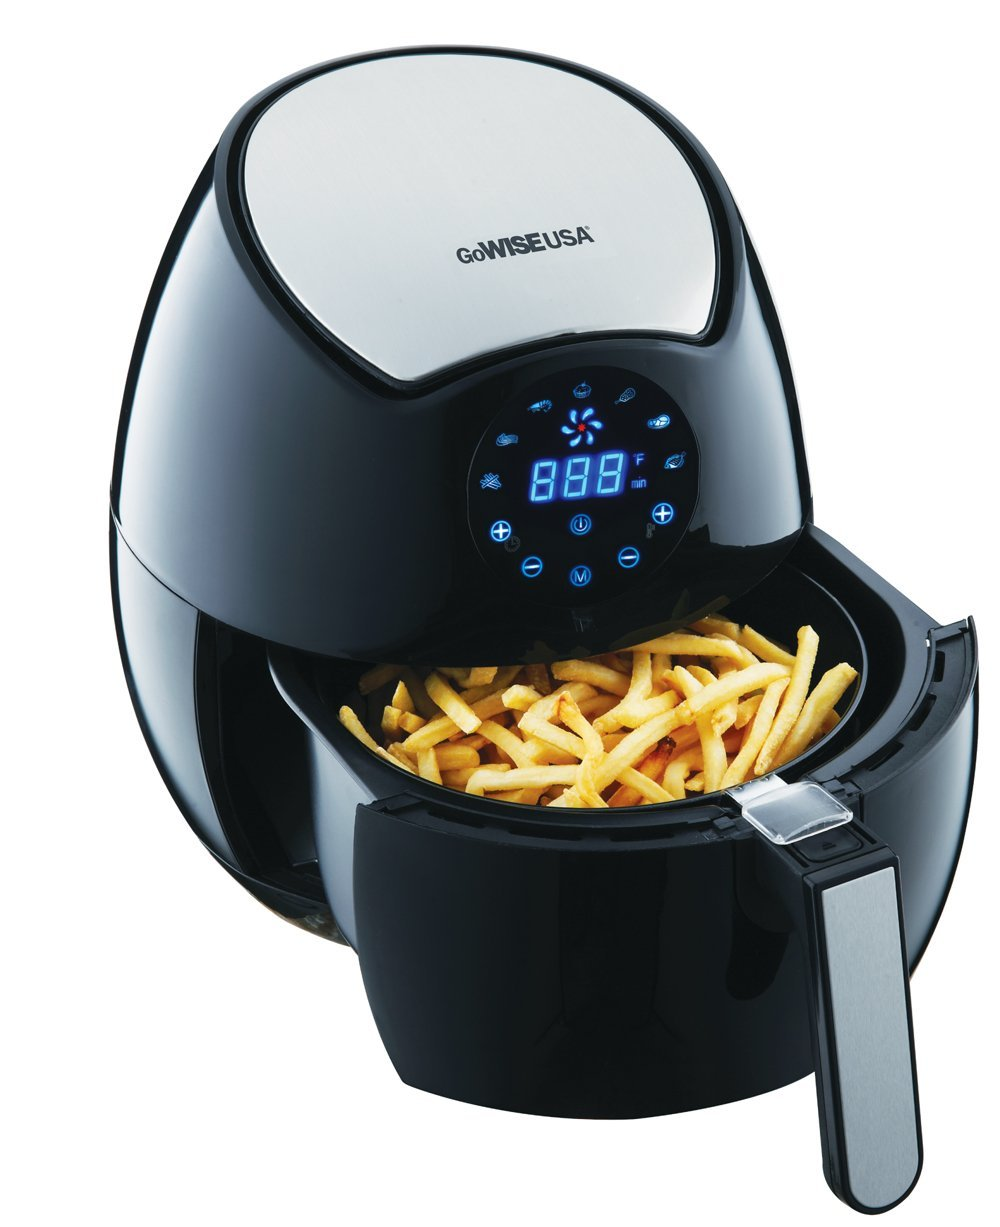 The GoWISE USA GW22621 is a good quality cheap air fryer.